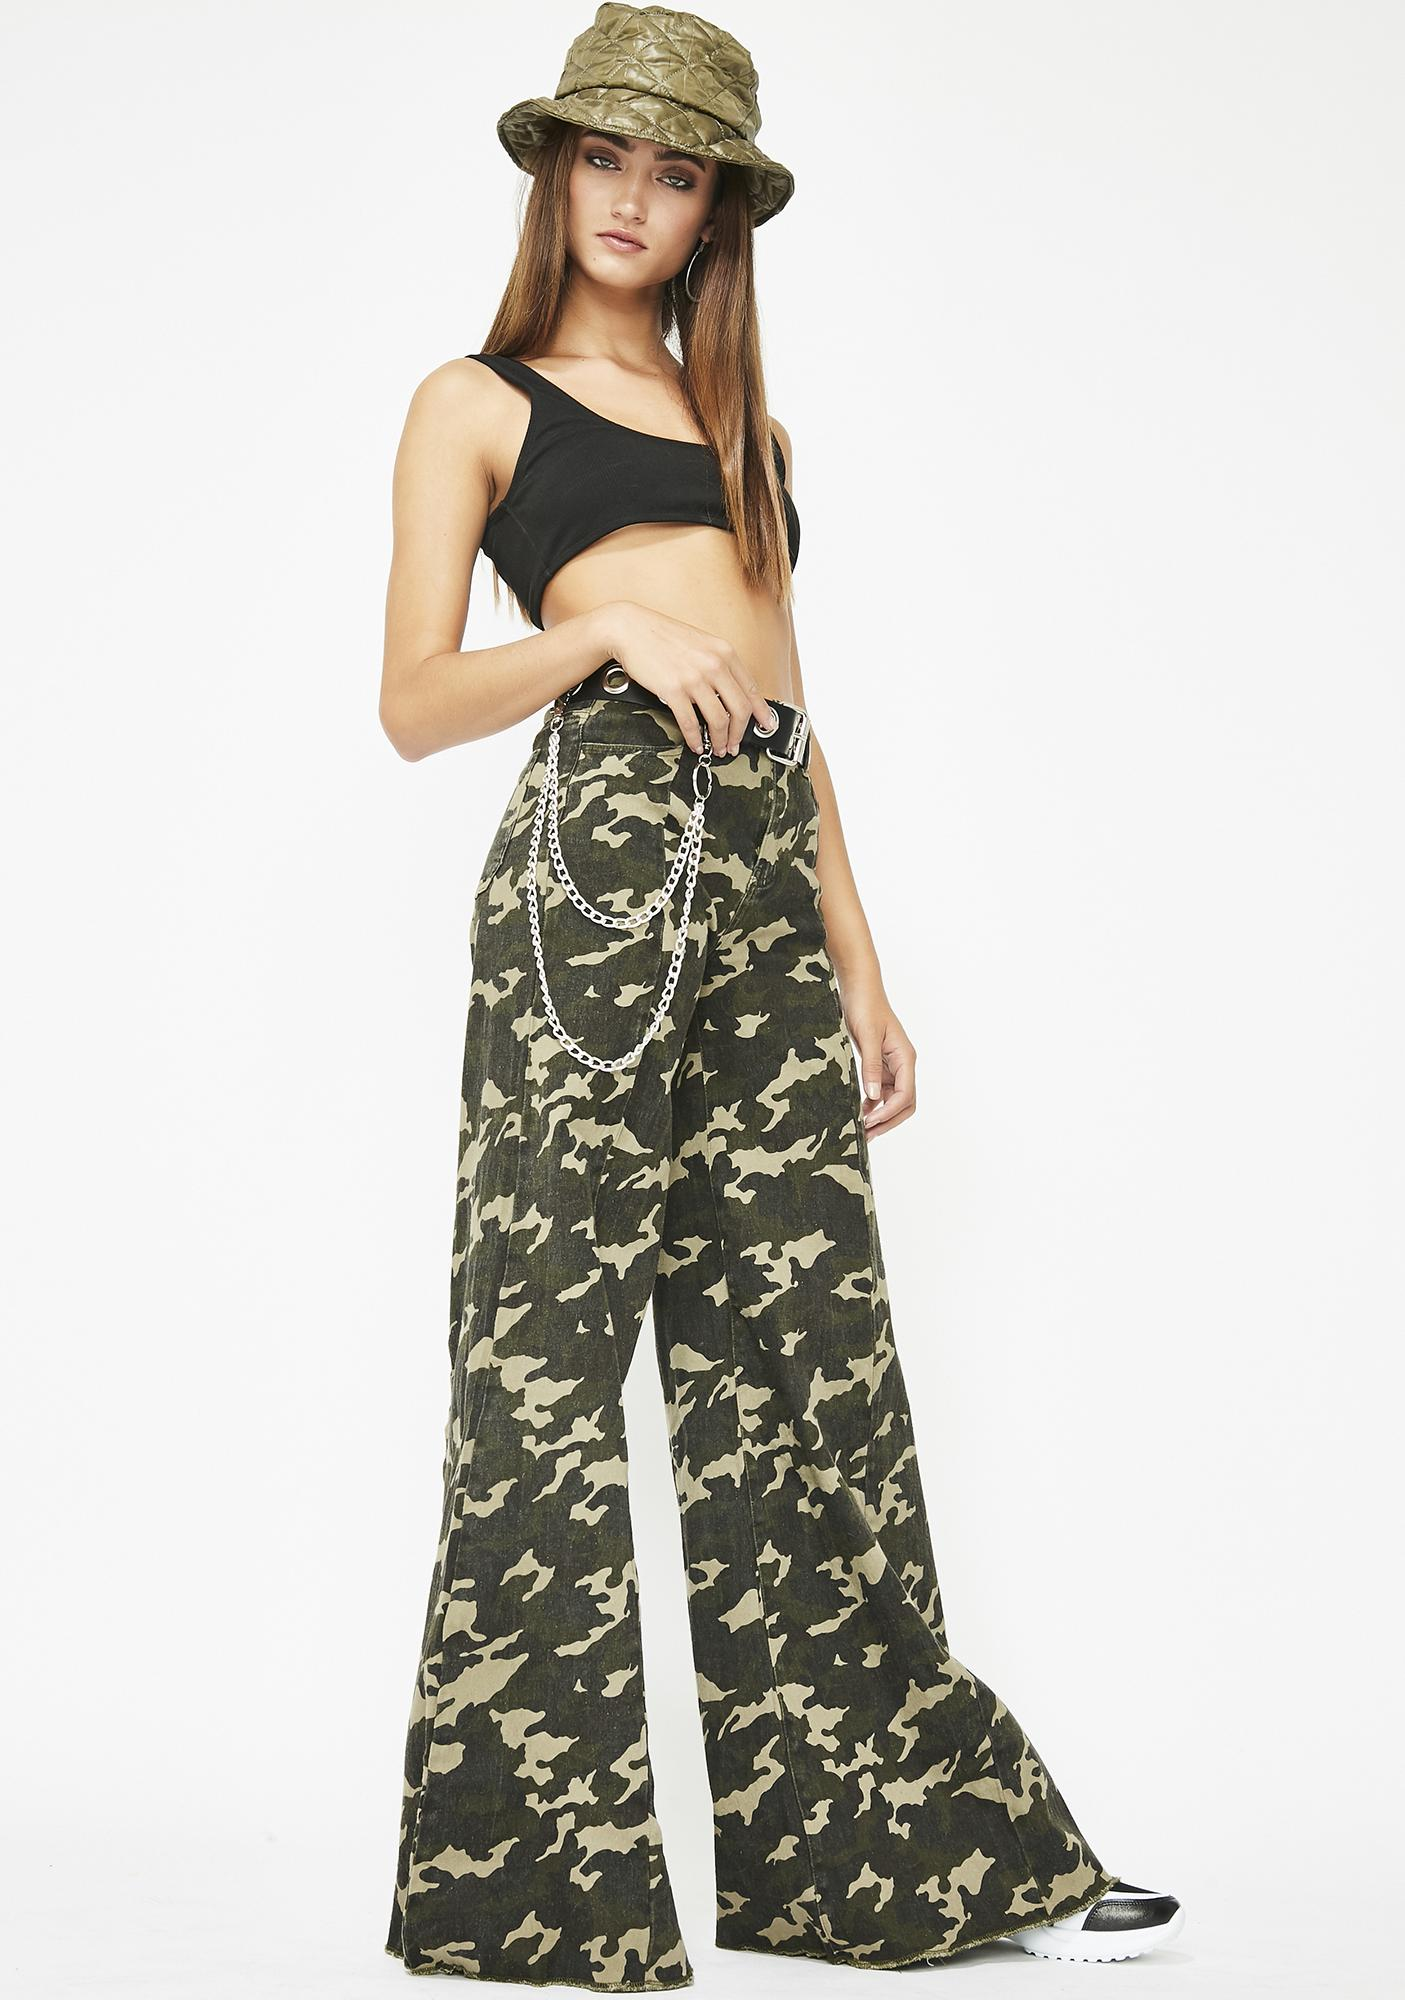 Too Much Sass Camo Pants